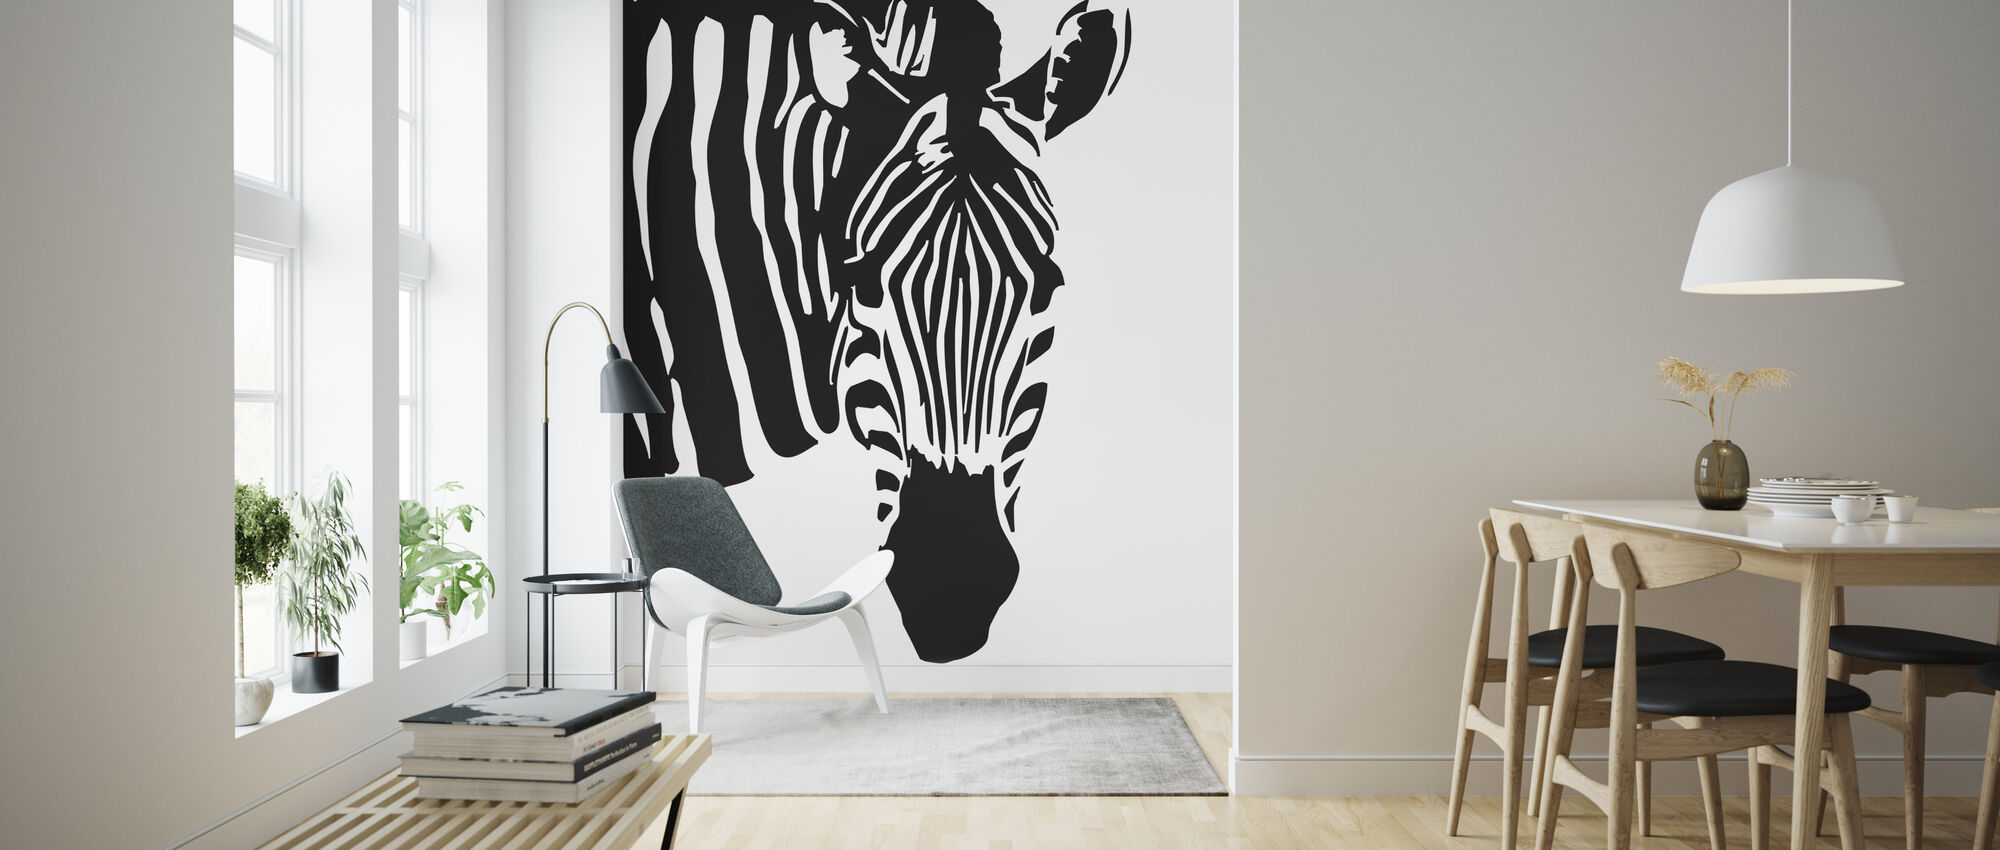 Watching Zebra - Wallpaper - Living Room